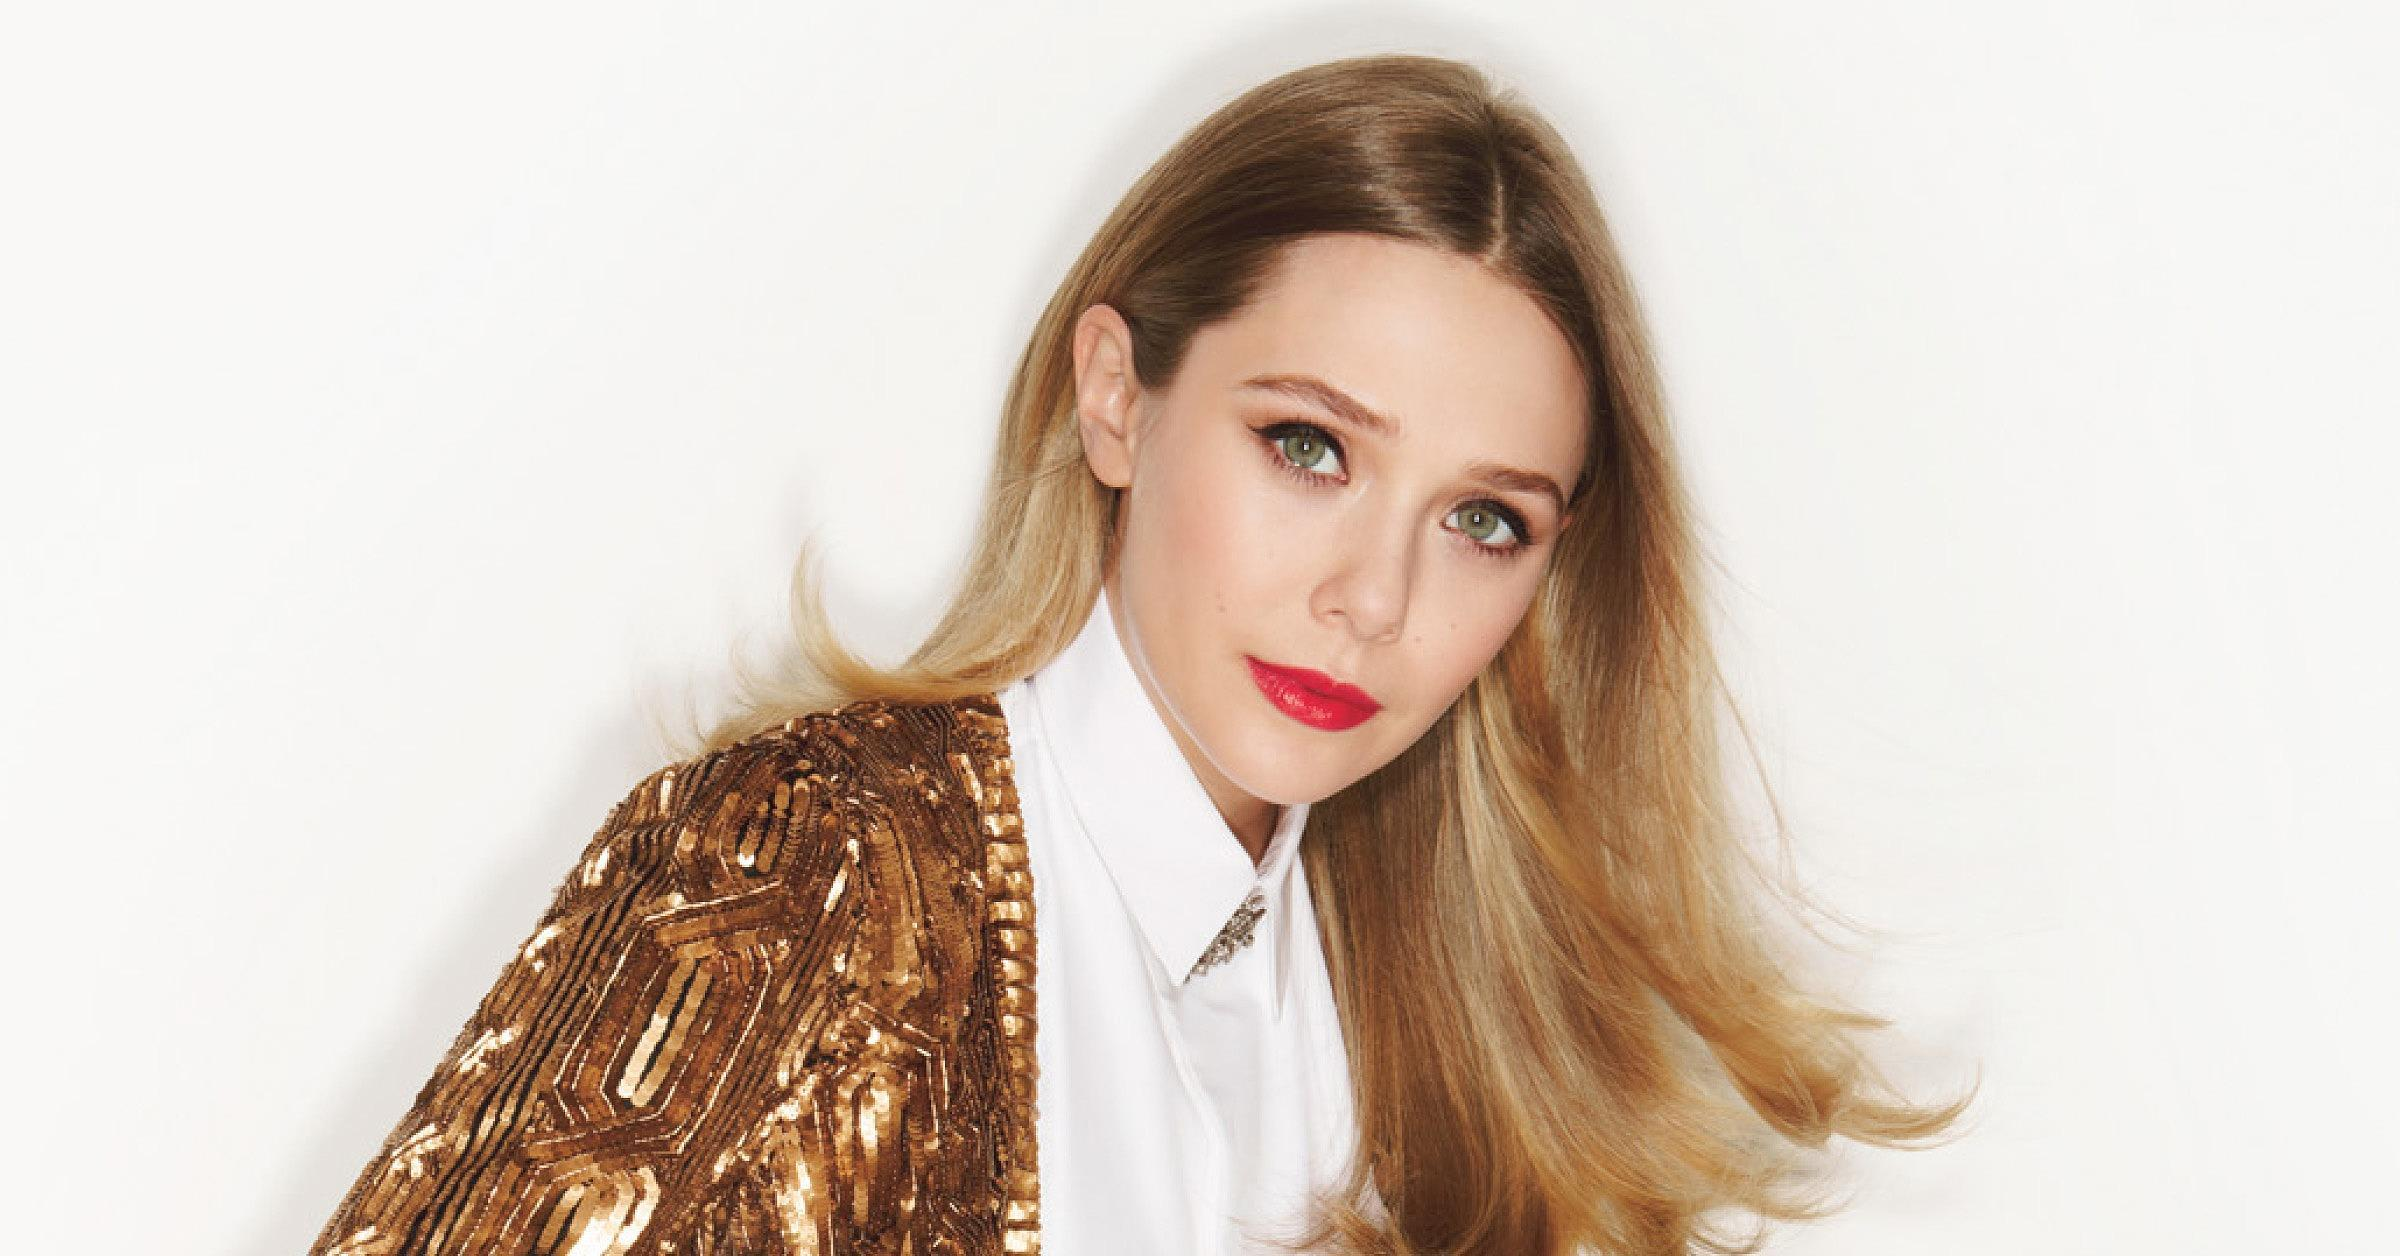 elizabeth olsen makeup wallpaper 66255